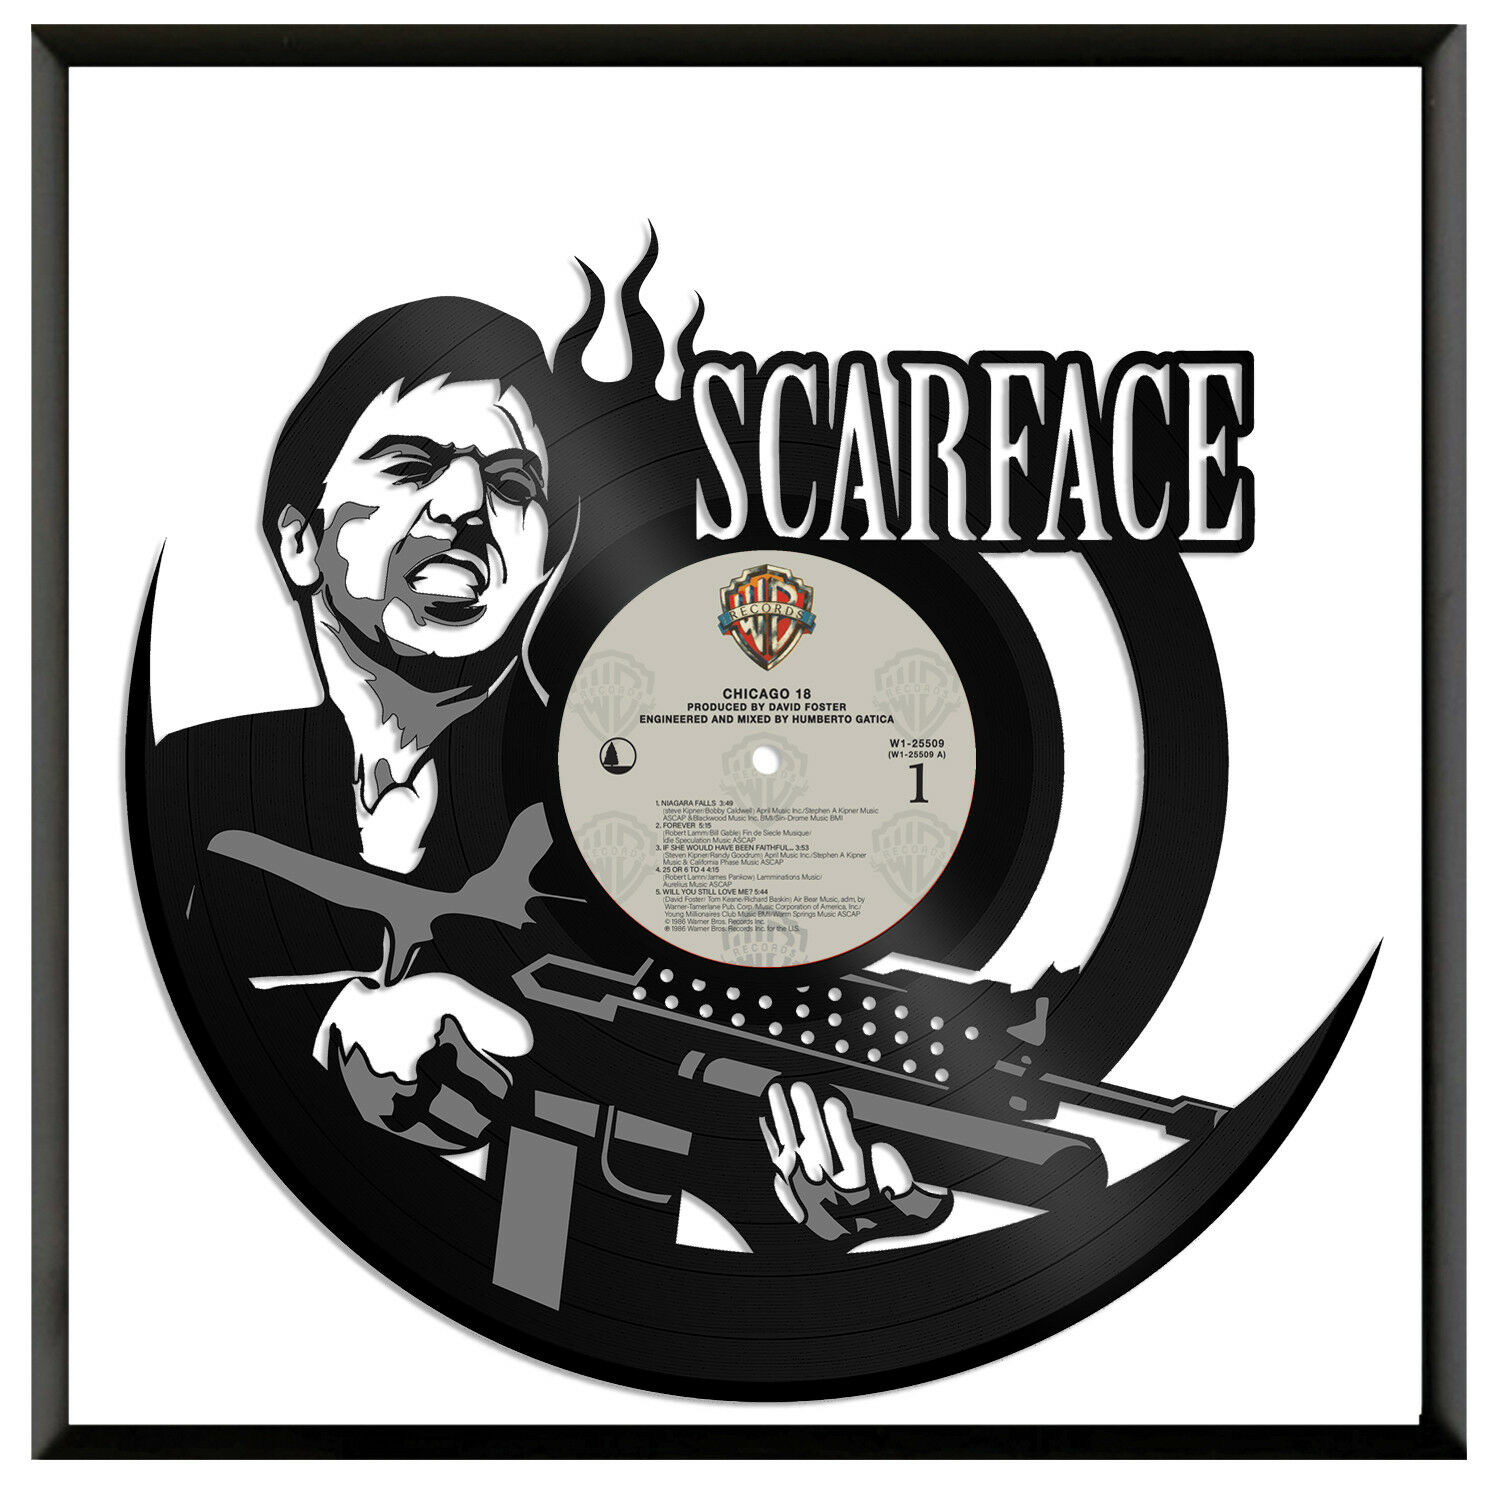 Scarface Vinyl Wall Art Unique Gift For Movie Lovers Home